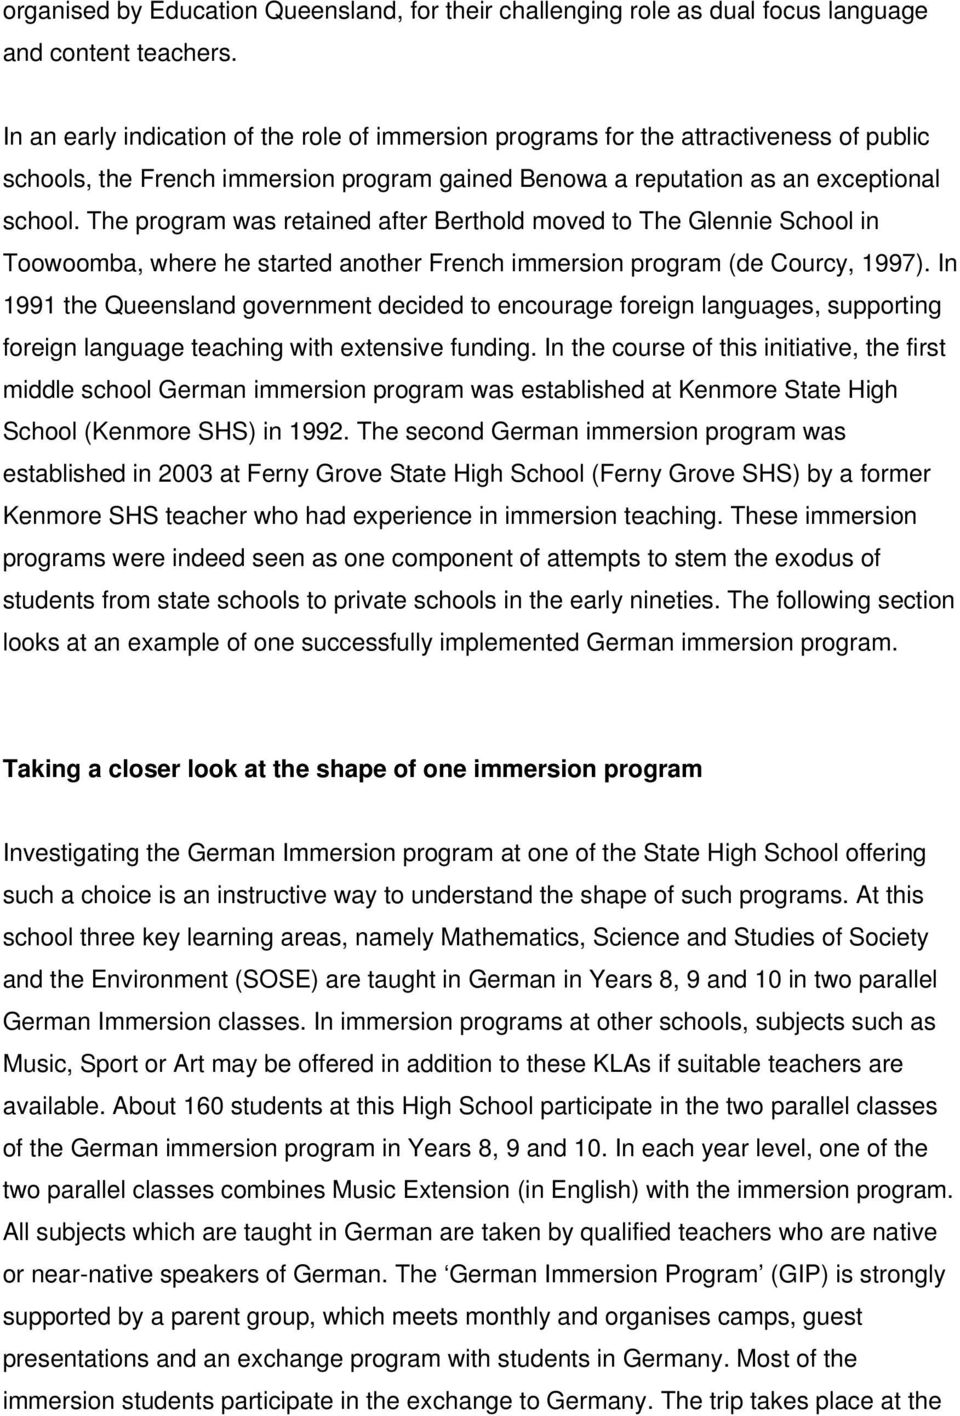 The program was retained after Berthold moved to The Glennie School in Toowoomba, where he started another French immersion program (de Courcy, 1997).